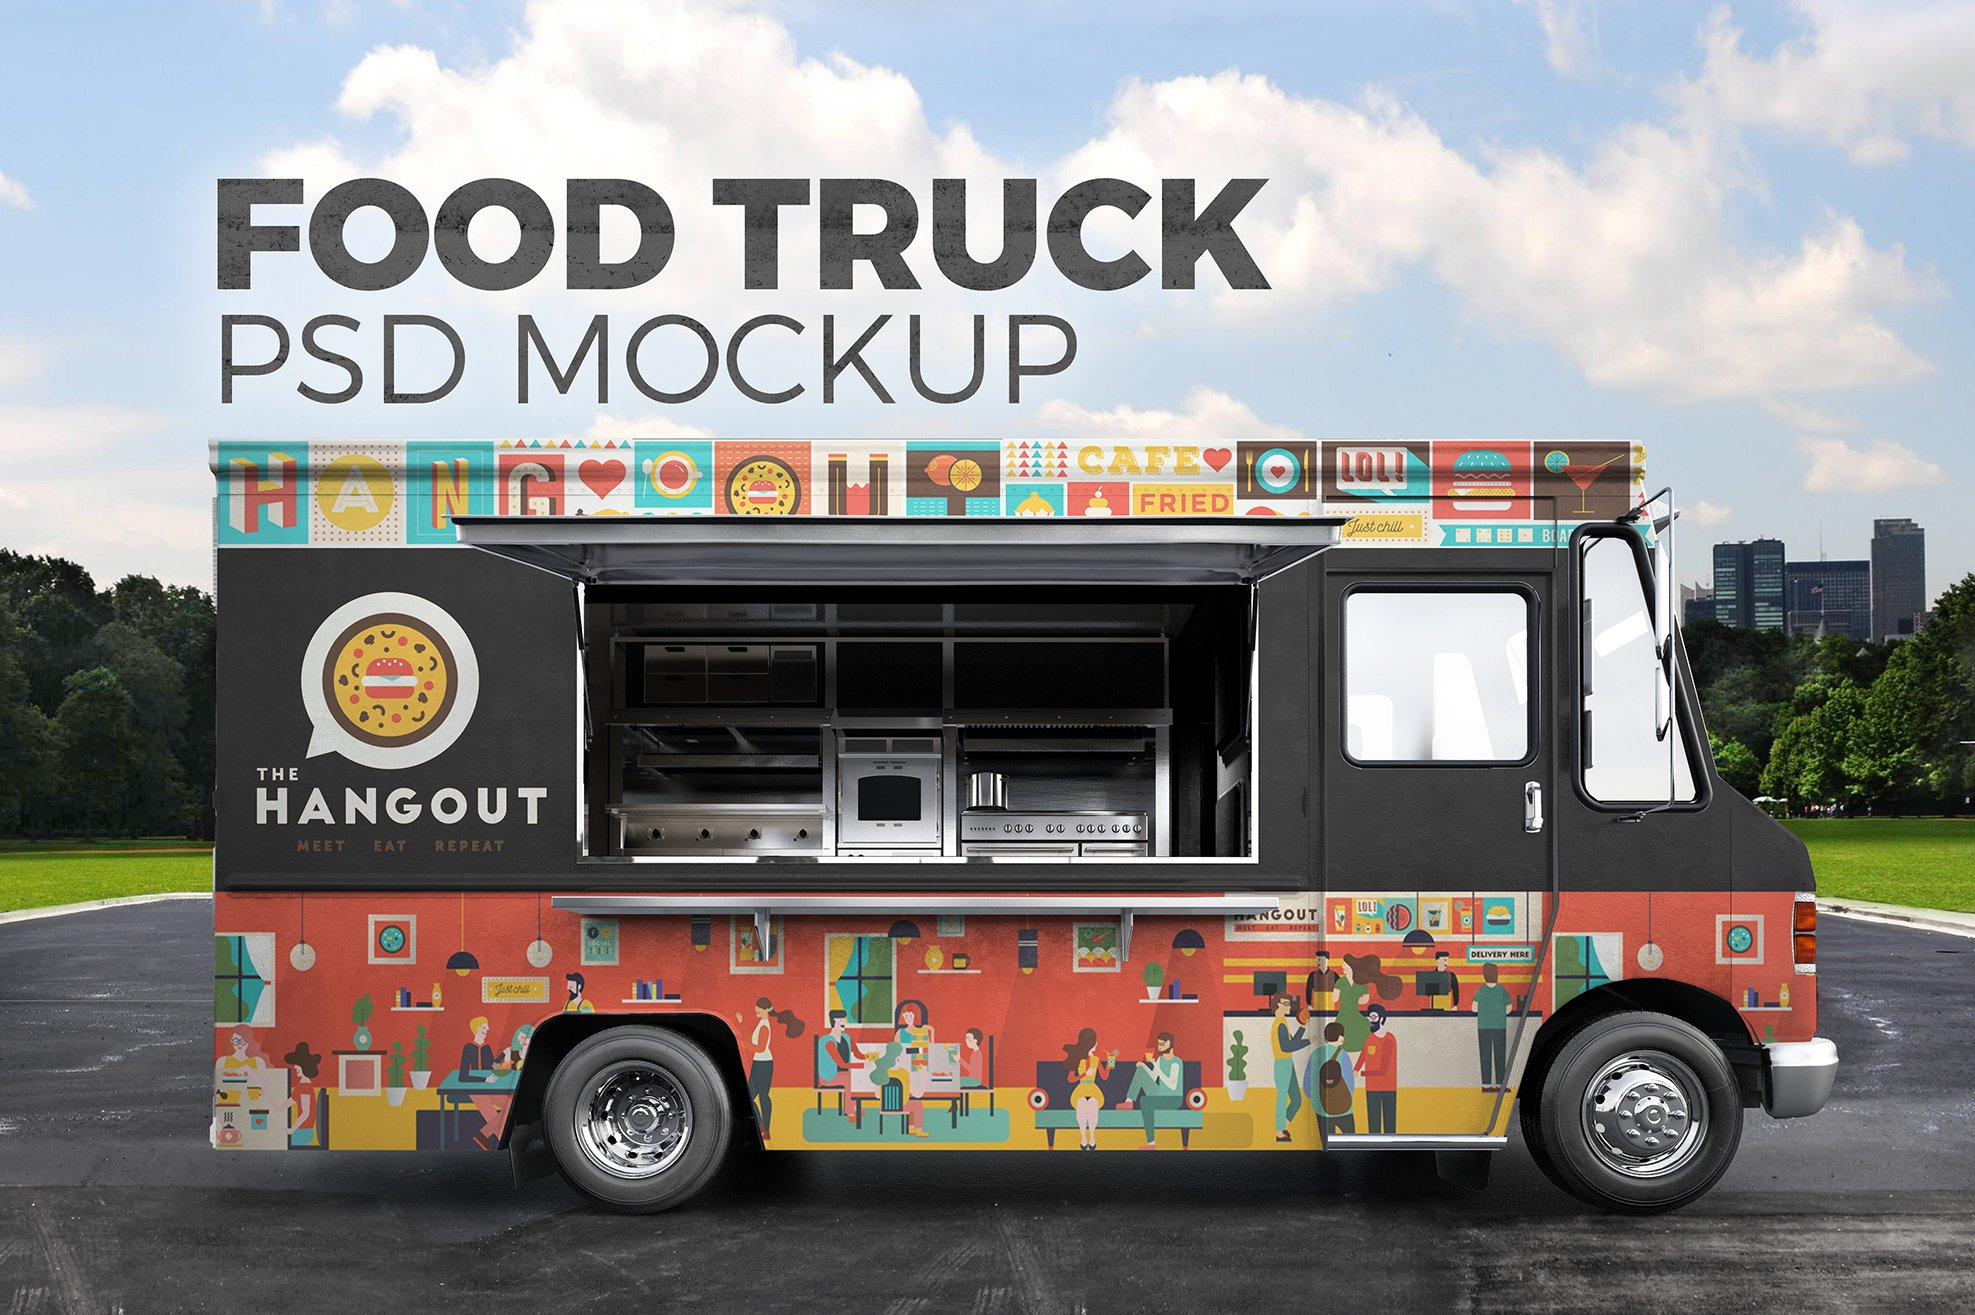 Food truck psd mockup product mockups creative market for How to design a food truck